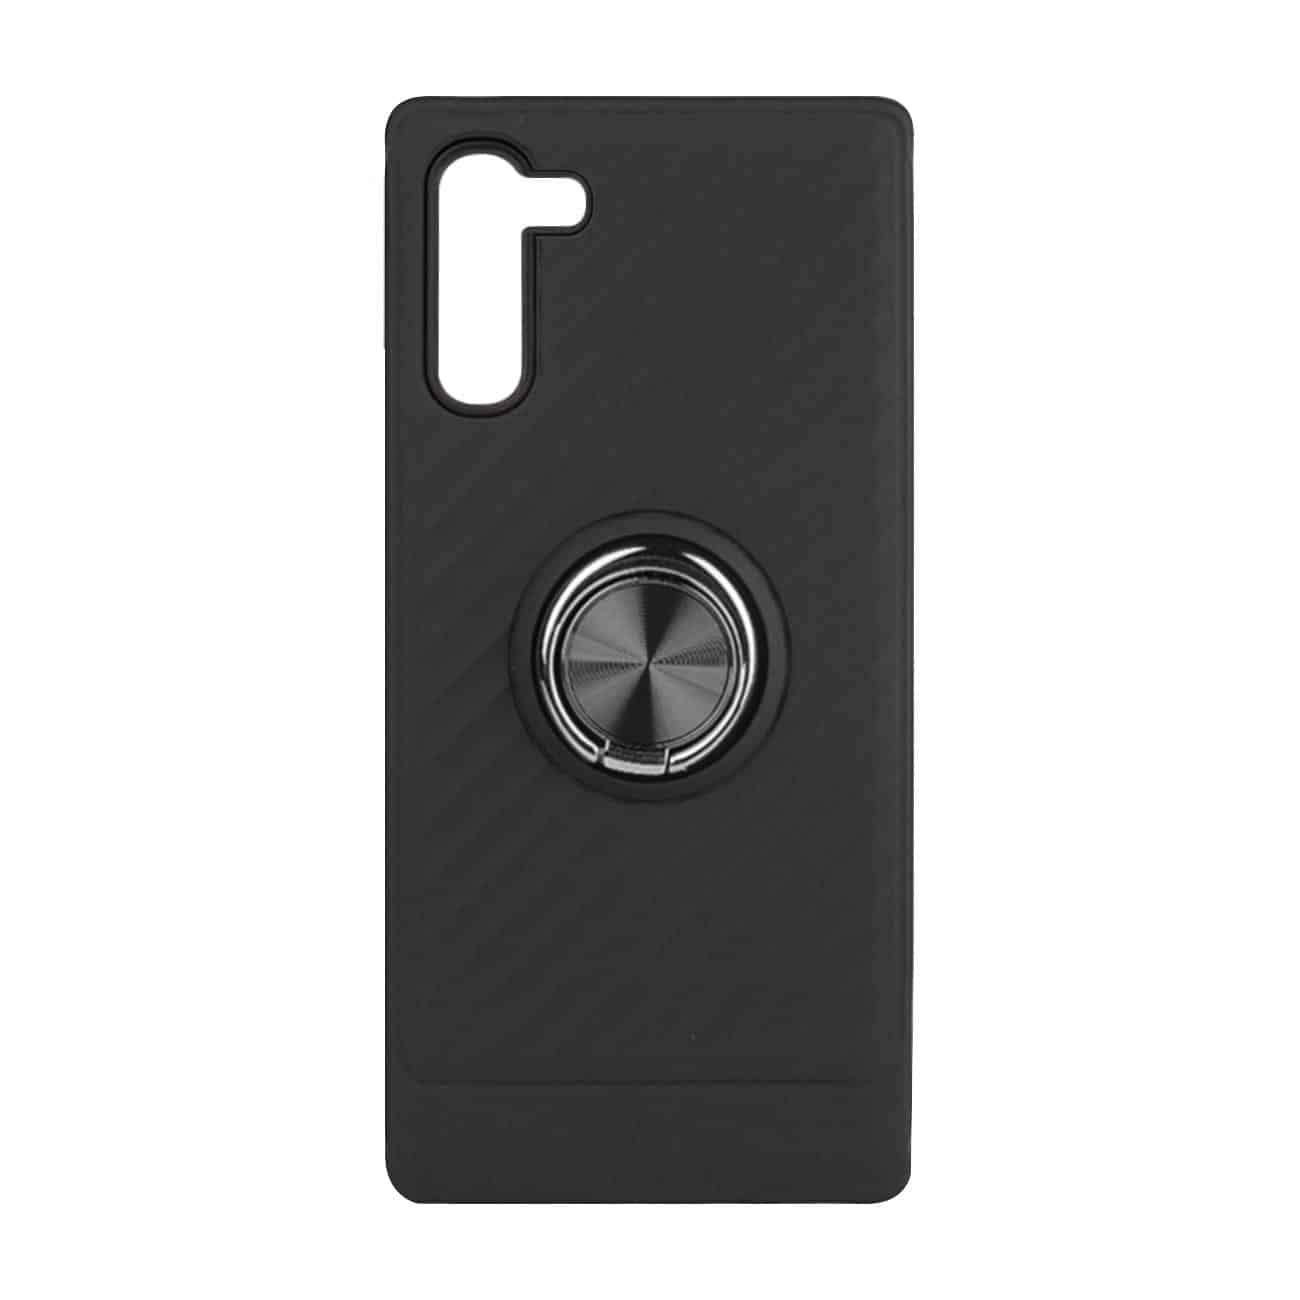 SAMSUNG GALAXY NOTE 10 Case with Ring Holder InBlack